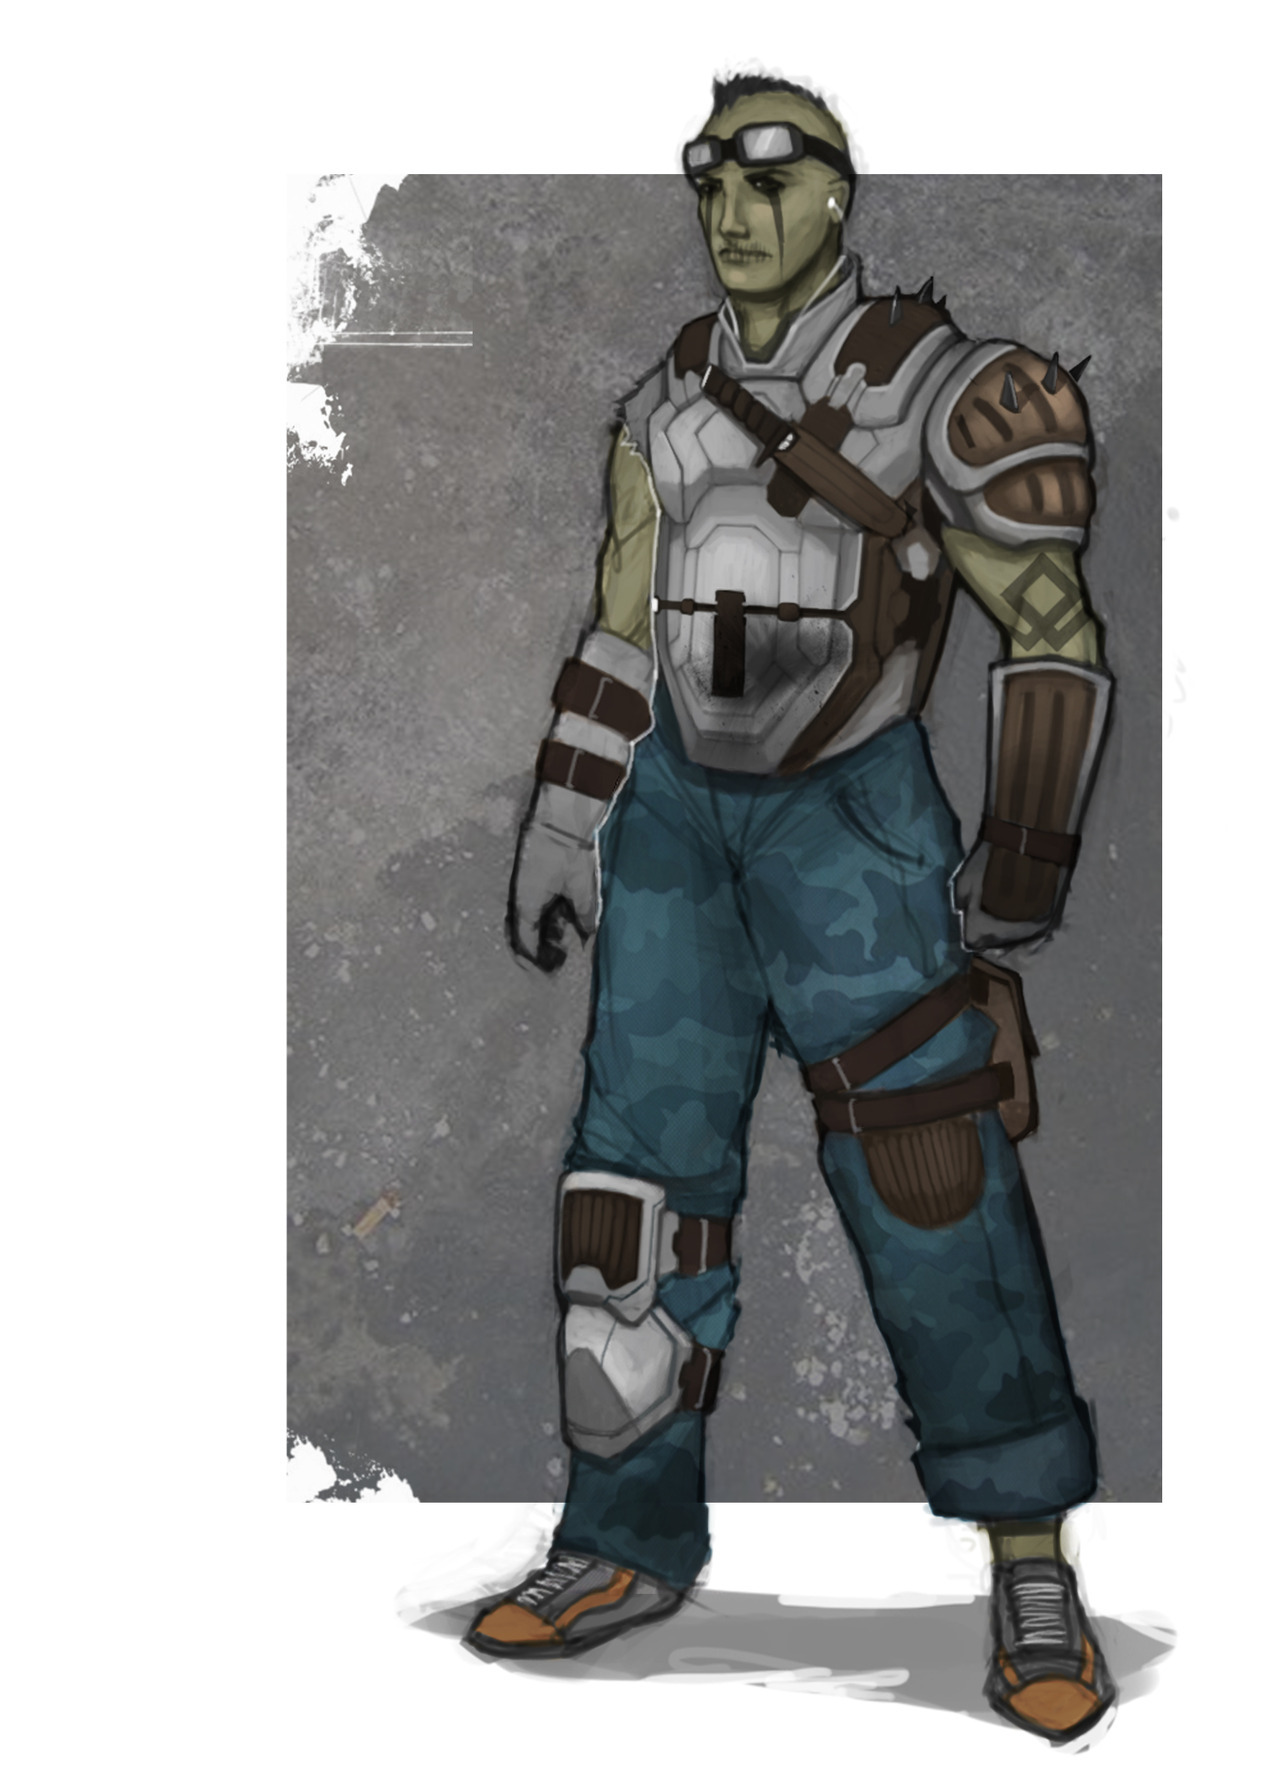 Concept art for a rebel soldier kinda guy.